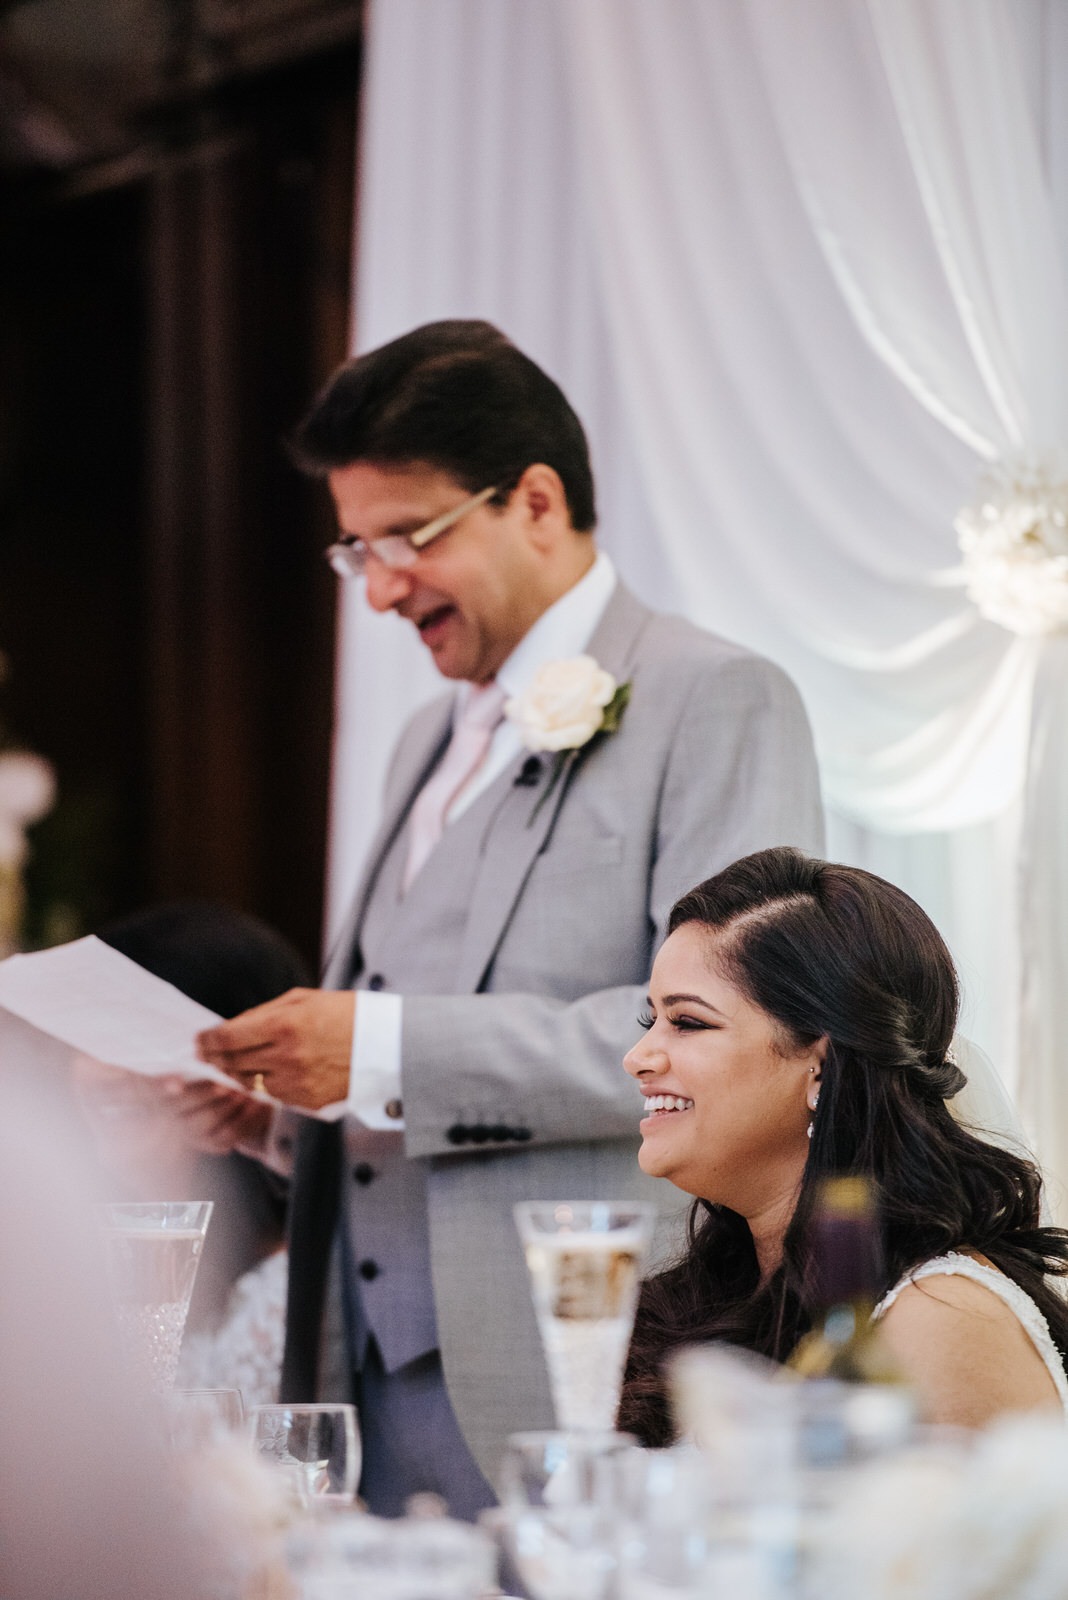 Bride smiles and looks veyr happy as her father delivers his wed